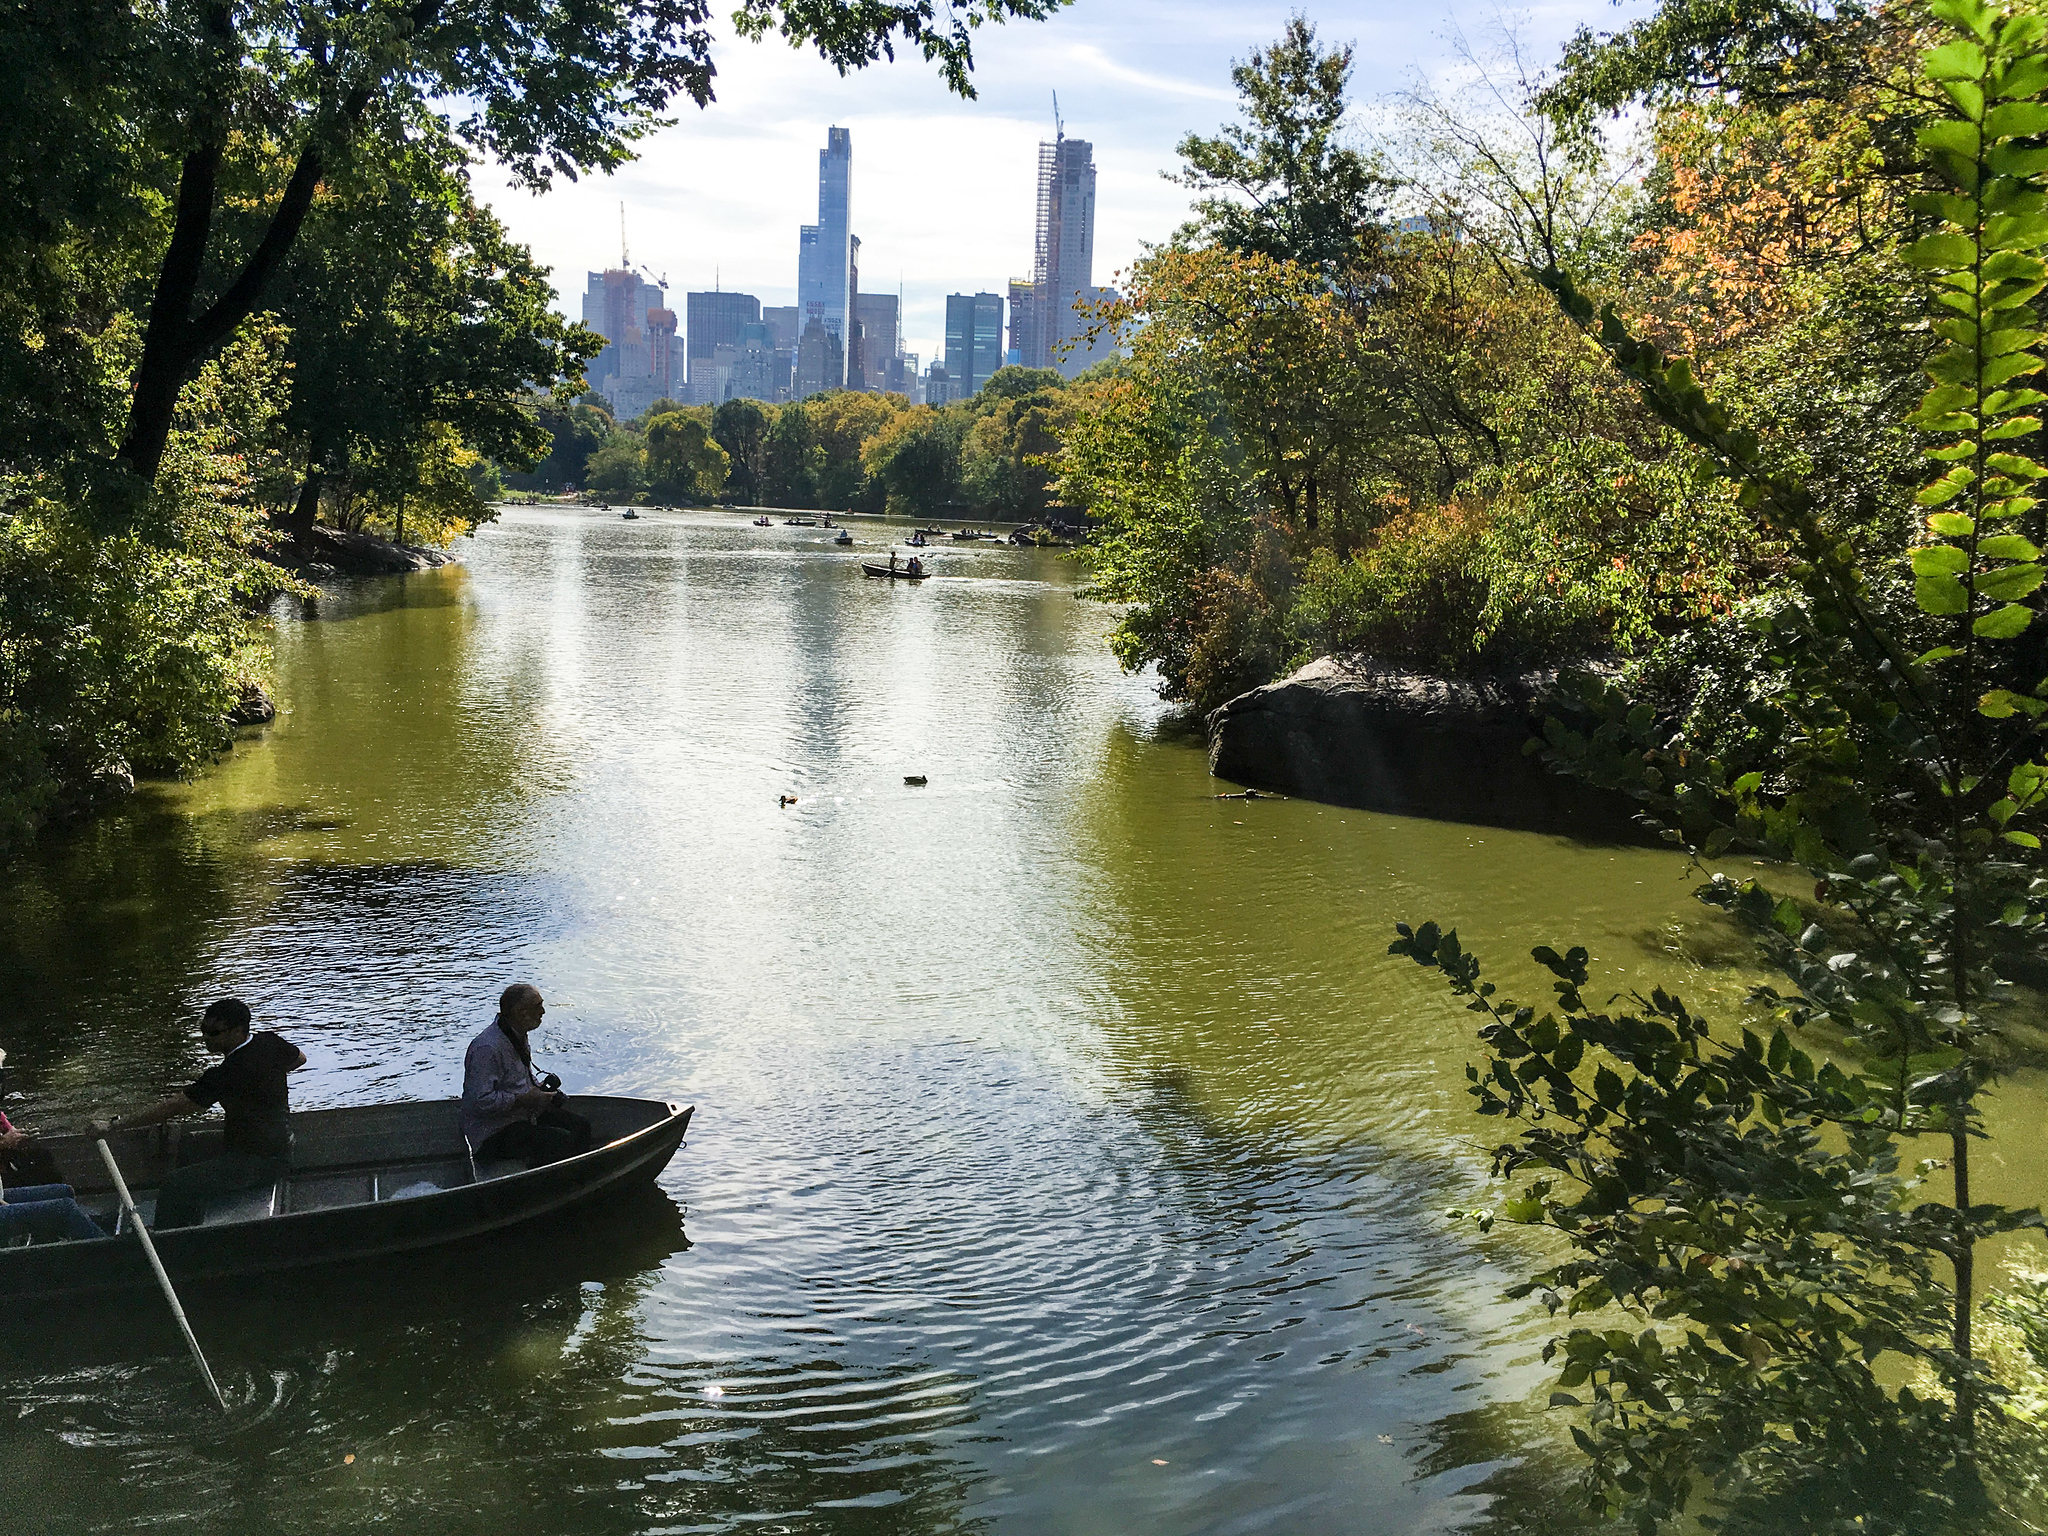 new york packing list fall: wear comfortable shoes to explore central park